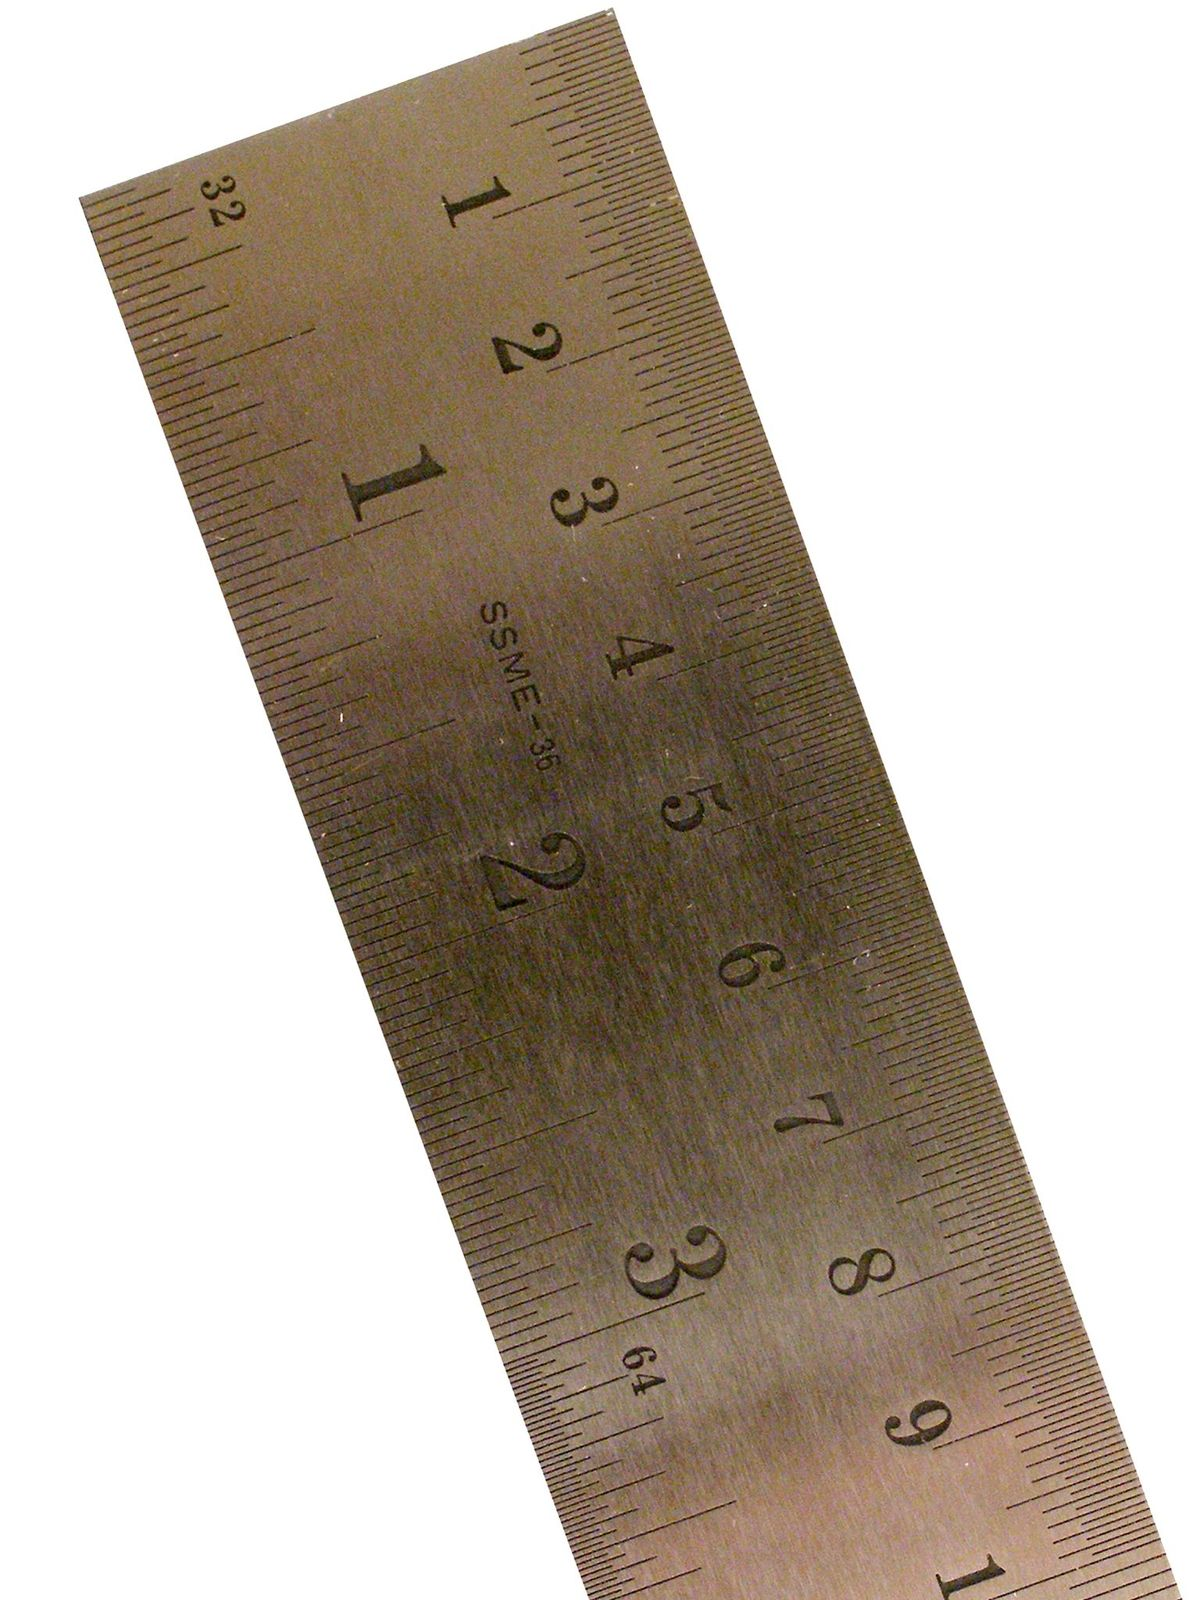 Stainless Steel Rulers Inch/Metric with Conversion Table